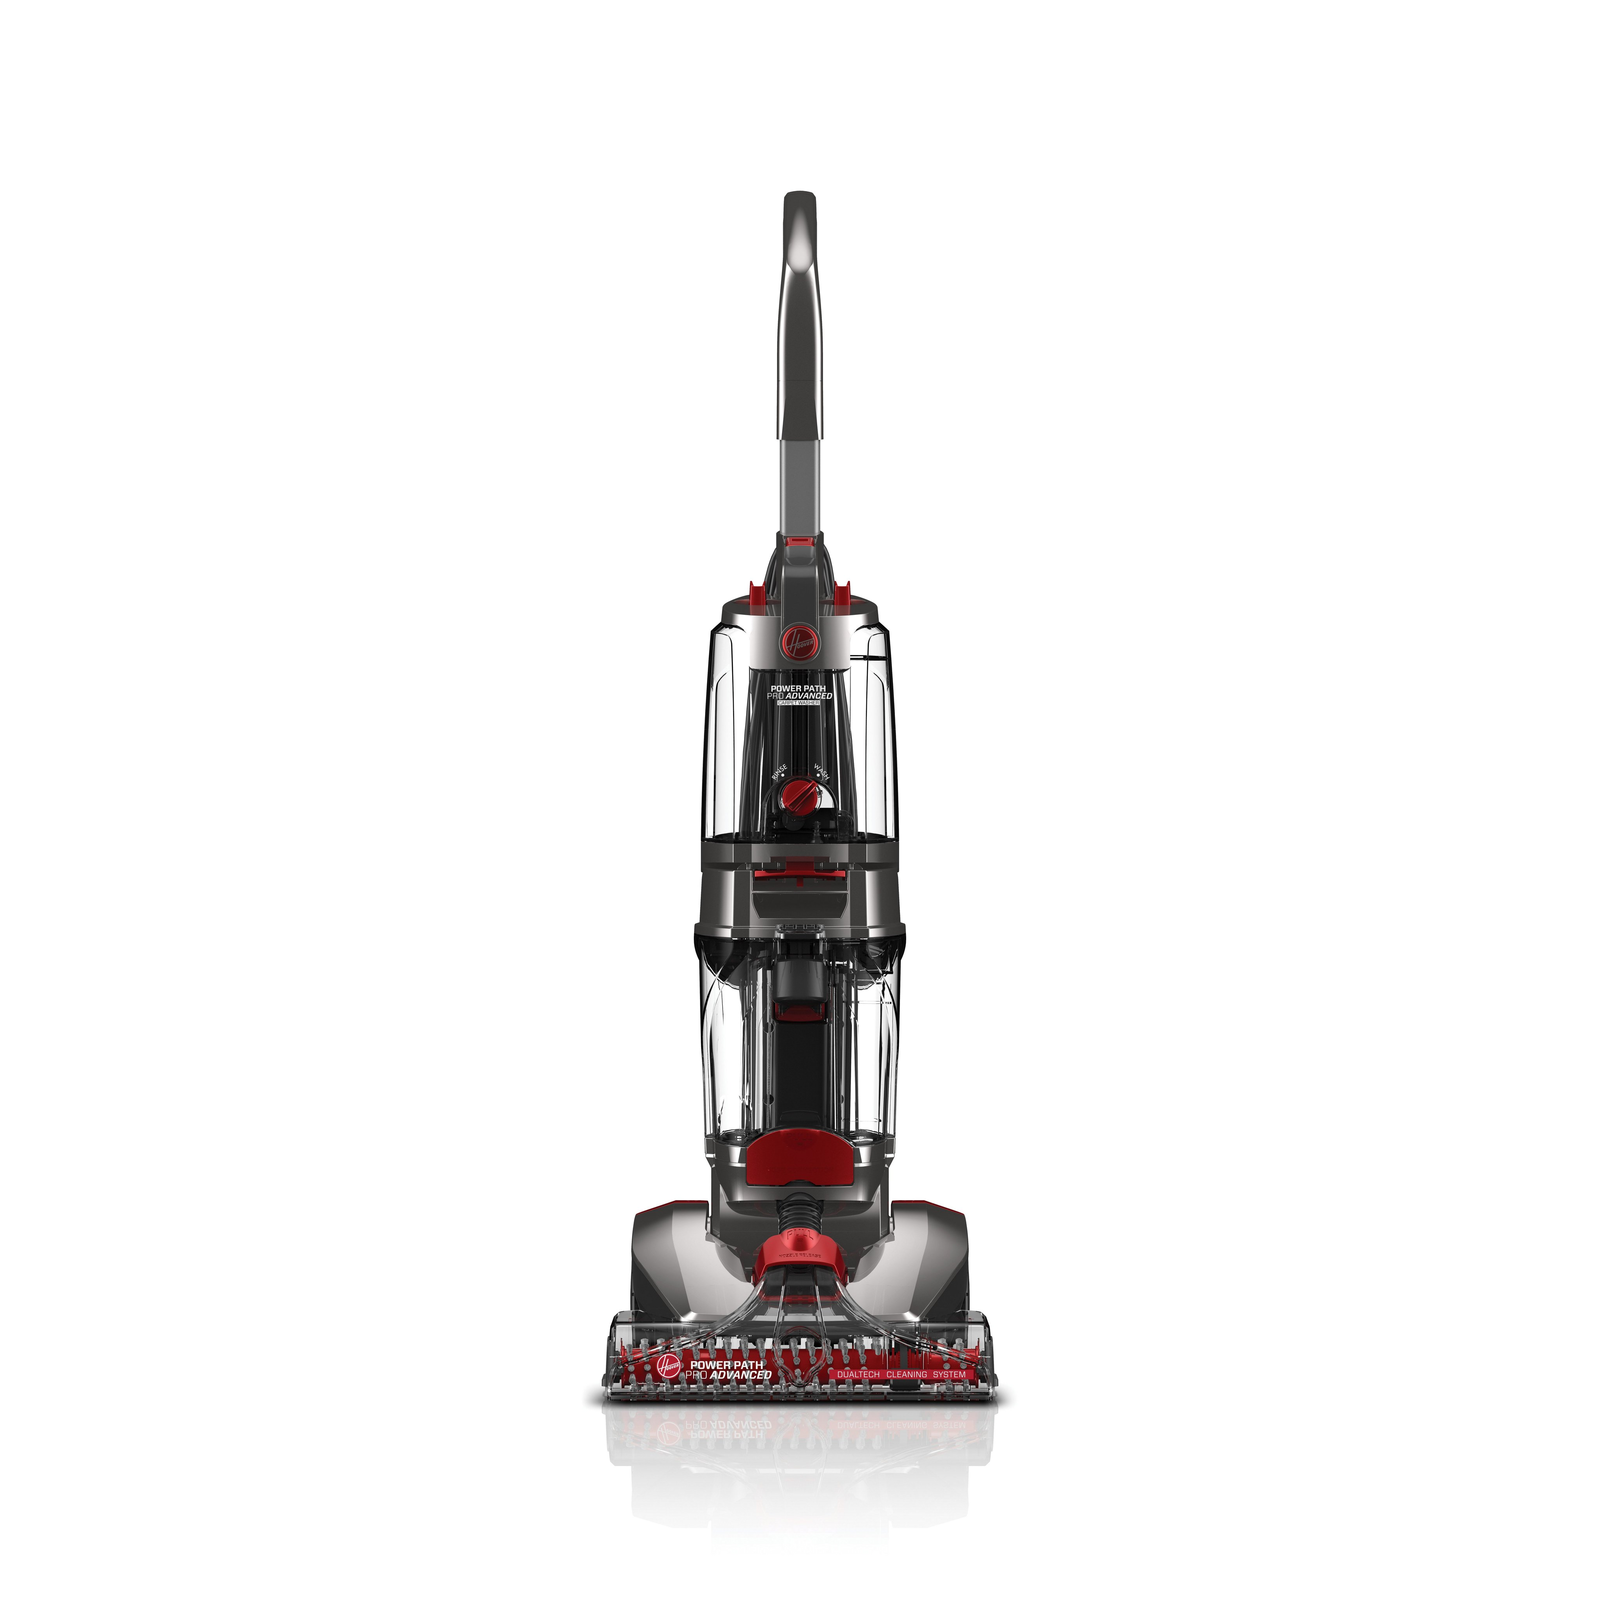 FH51102NC: Hoover Carpet Cleaner Power Path Pro Advanced